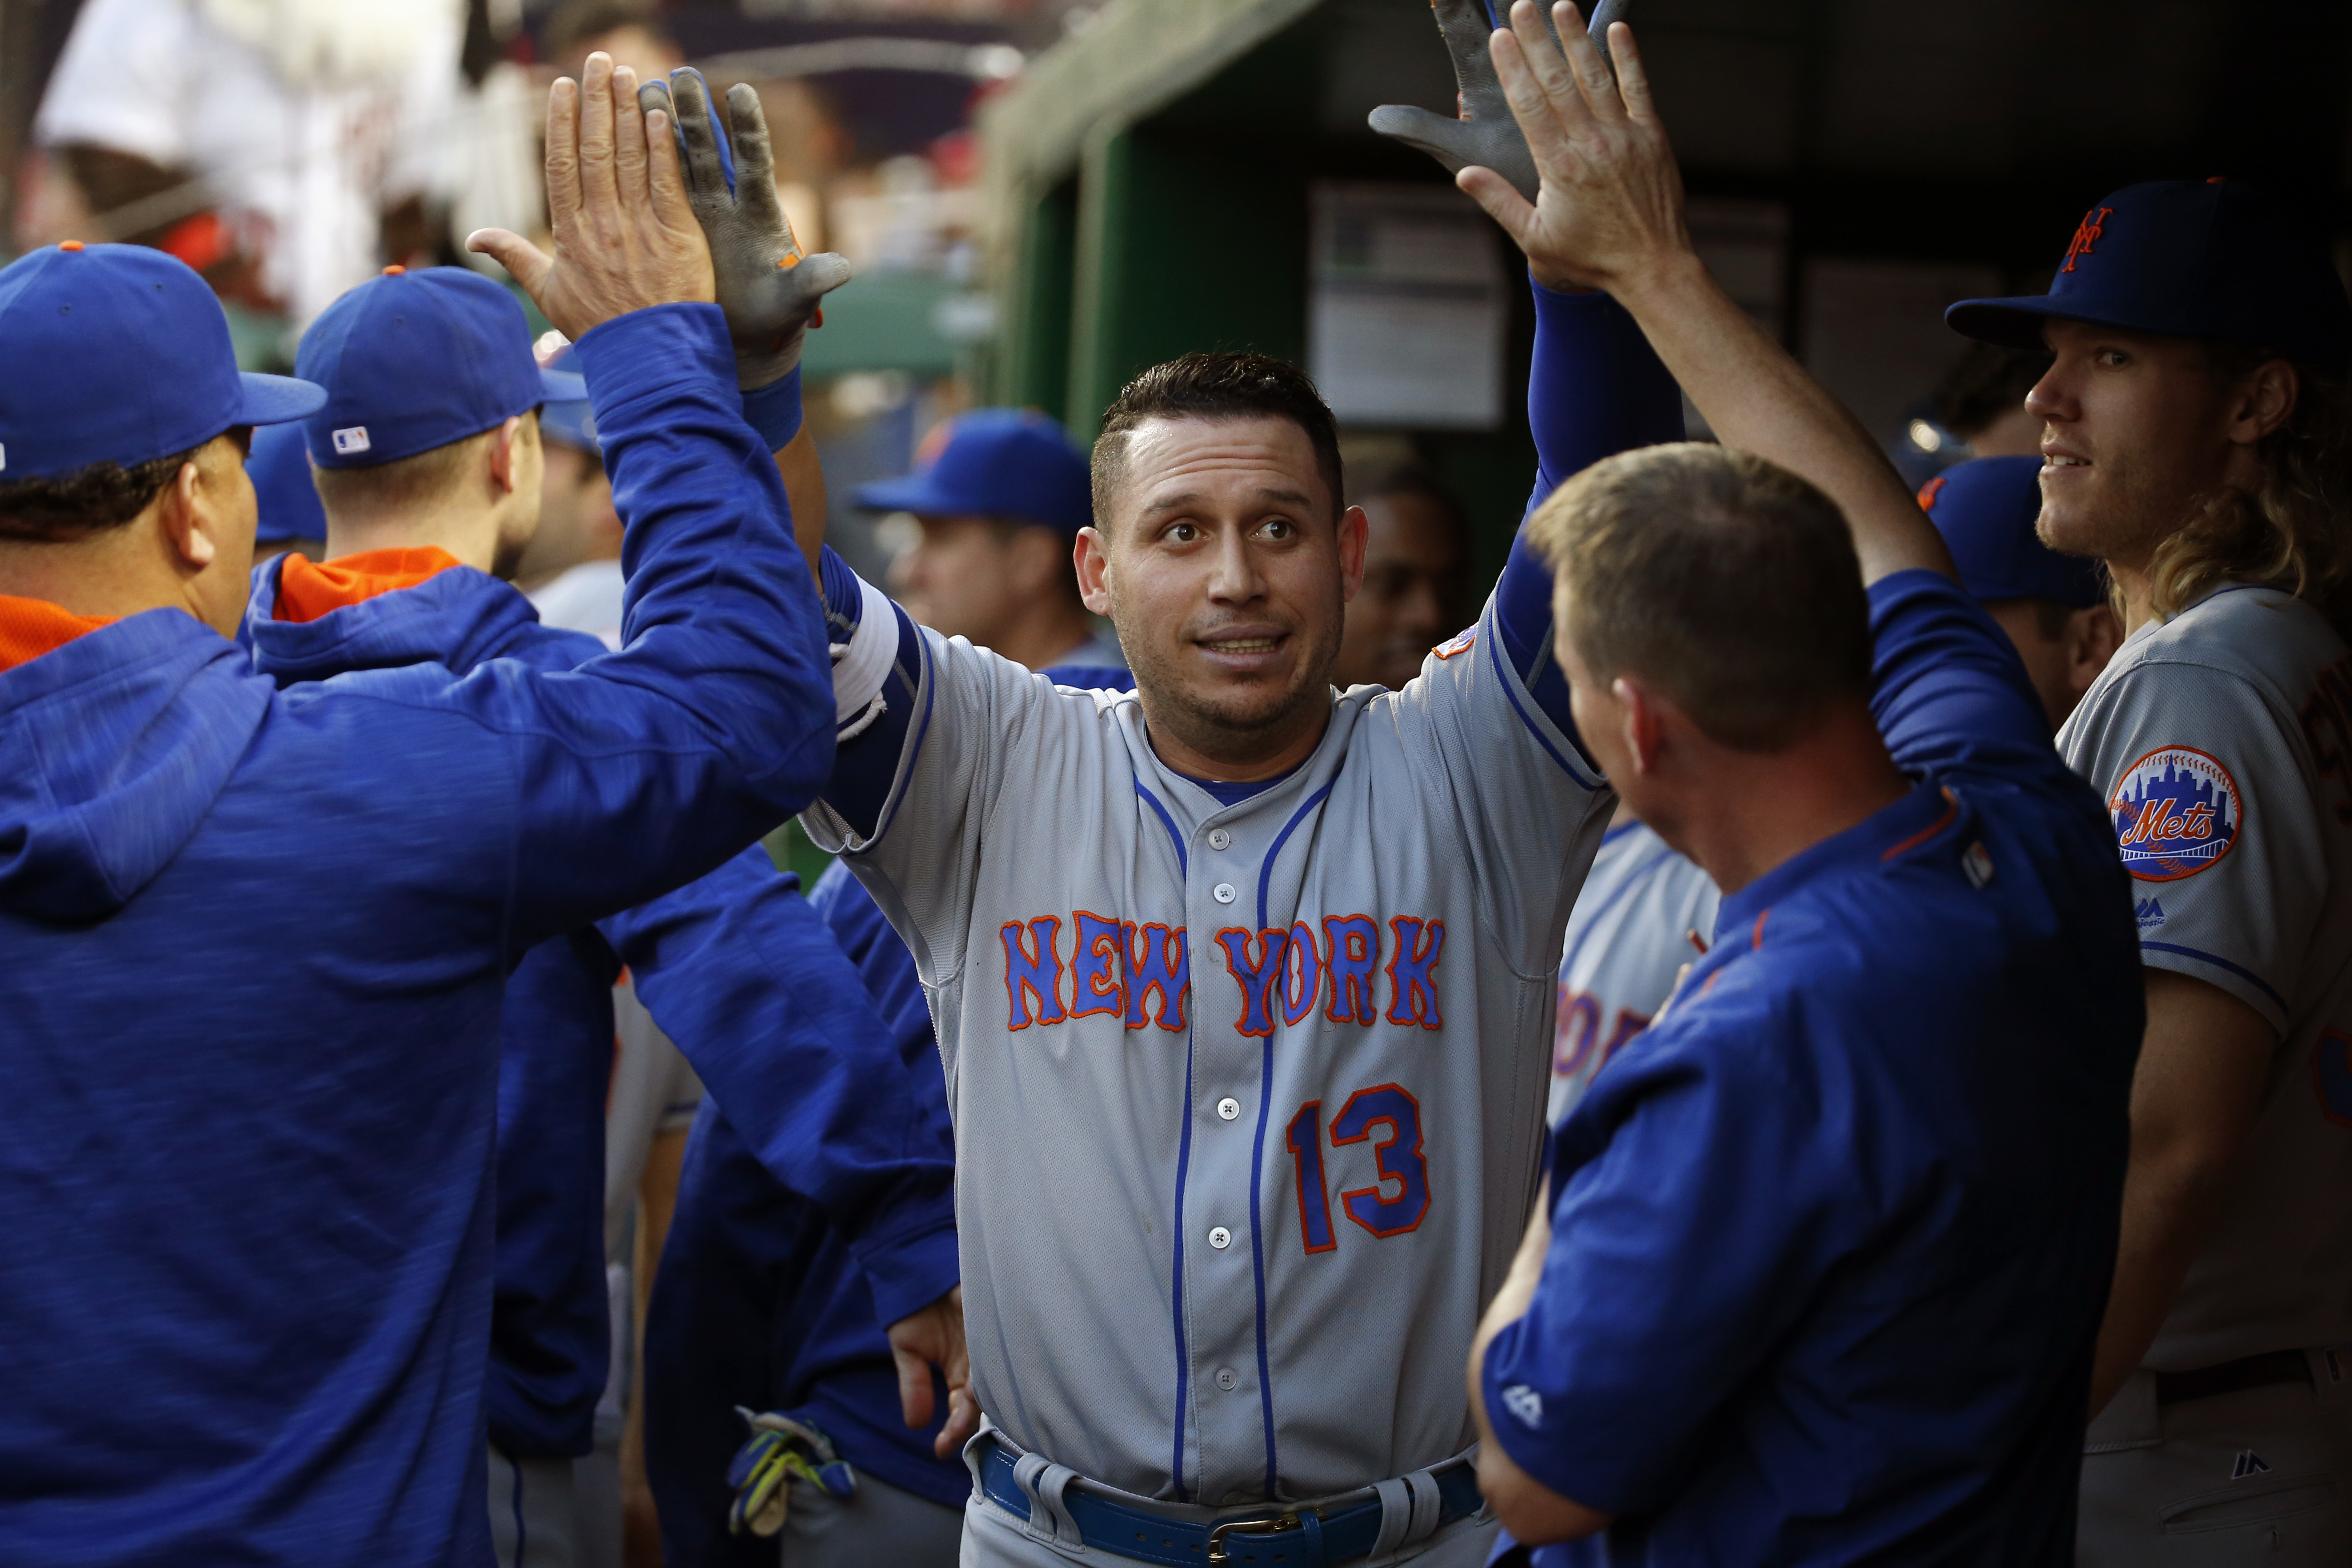 New York Mets' Asdrubal Cabrera (13) is congratulated on his solo home run during the fourth inning of a baseball game against the Washington Nationals at Nationals Park, Tuesday, May 24, 2016, in Washington. (AP Photo/Alex Brandon)